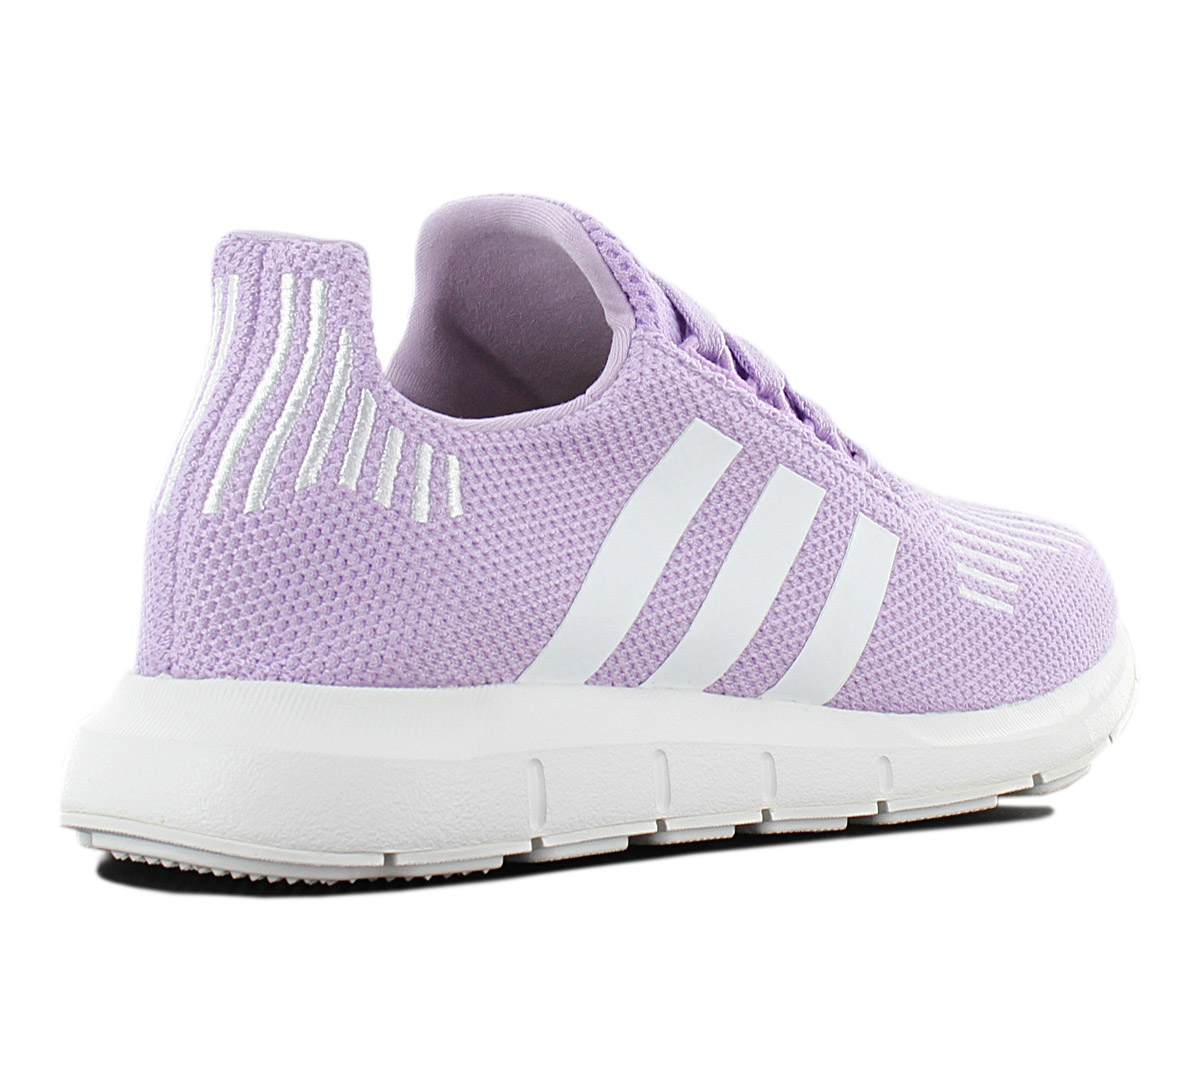 lowest price buying cheap best online Details about Adidas Originals Swift Run Women's Sneaker DA8729 Purple  Shoes Sneakers New